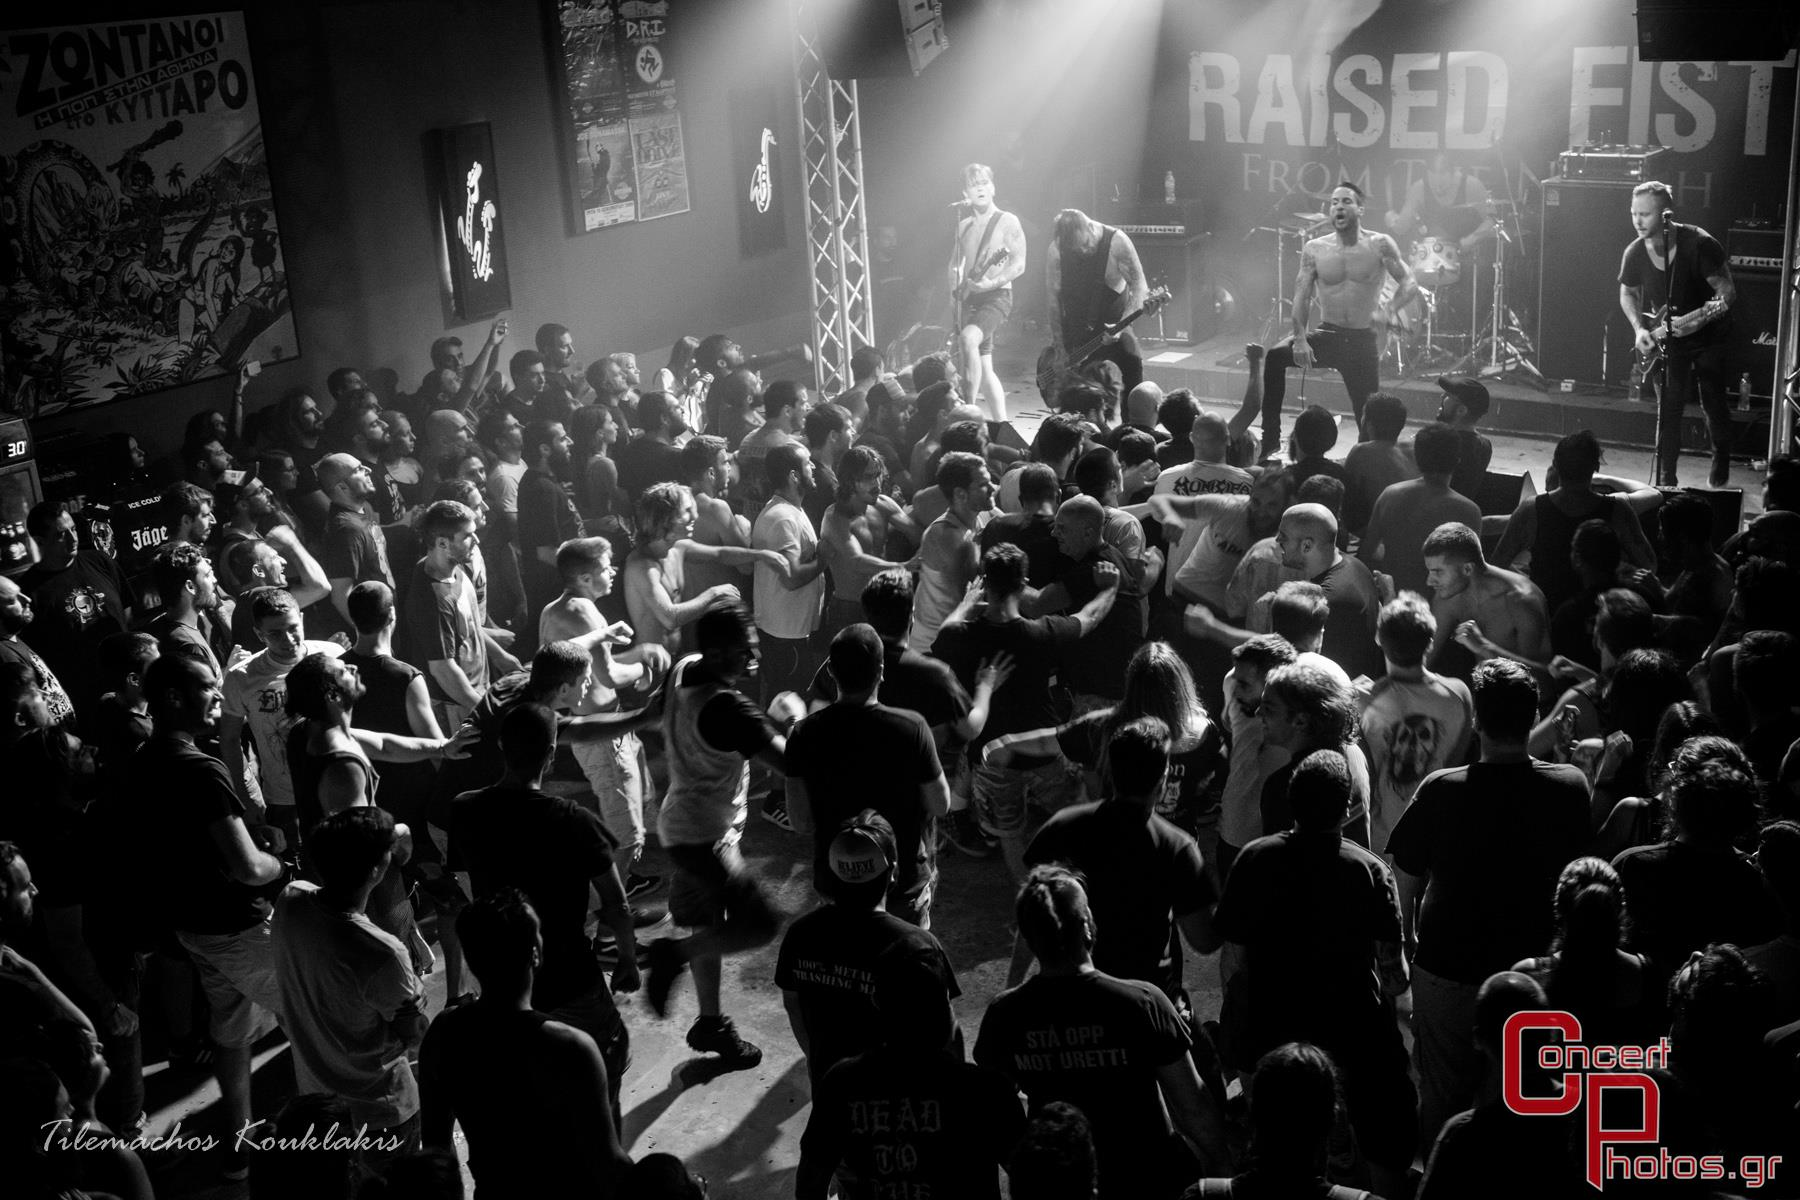 Raised Fist - Endsight - The Locals-Raised Fist photographer:  - 01_Raised Fist_20